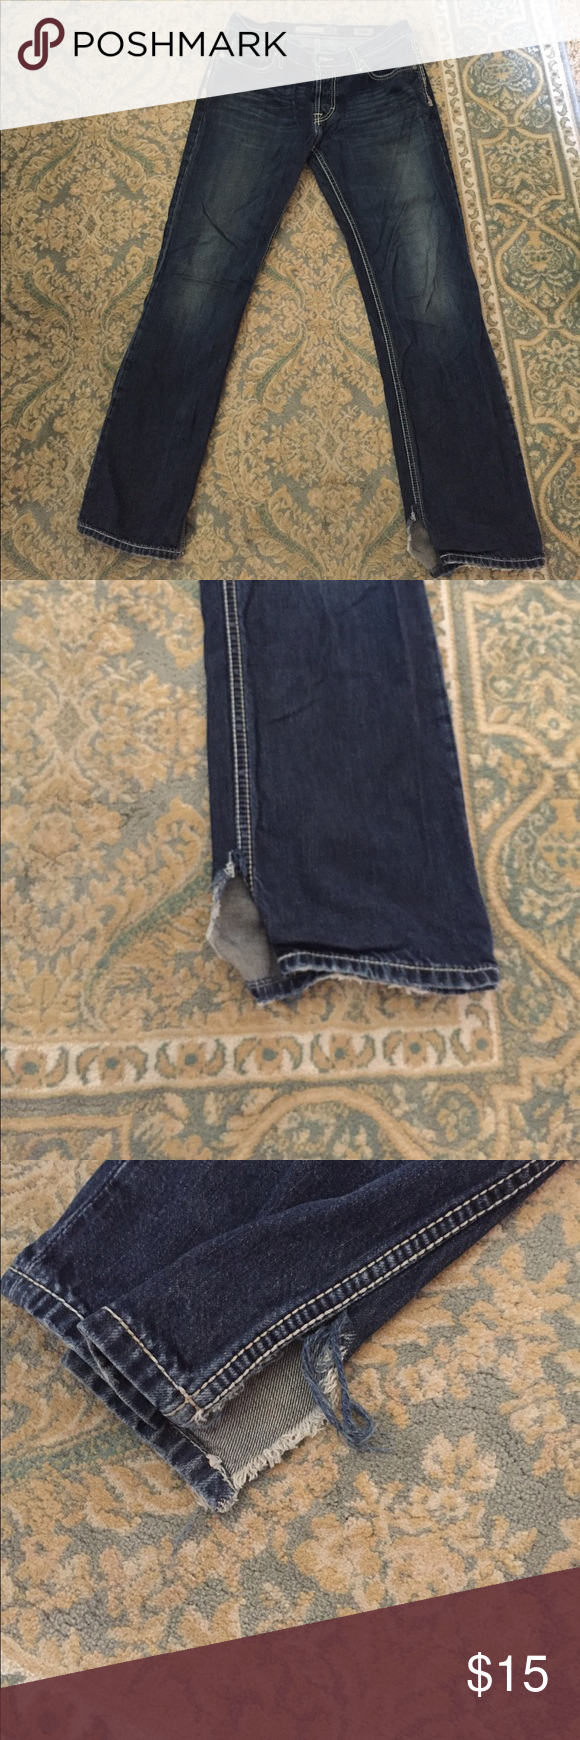 BKE carter straight jeans 33R 32L These BKE jeans are in great condition the size is 33 around the waist 32 length straight cut. Please refer to pictures for my husband cuts the bottom of jeans so they fit over his boots but when you have them on it's not really noticeable. Make me an offer. BKE Jeans Straight